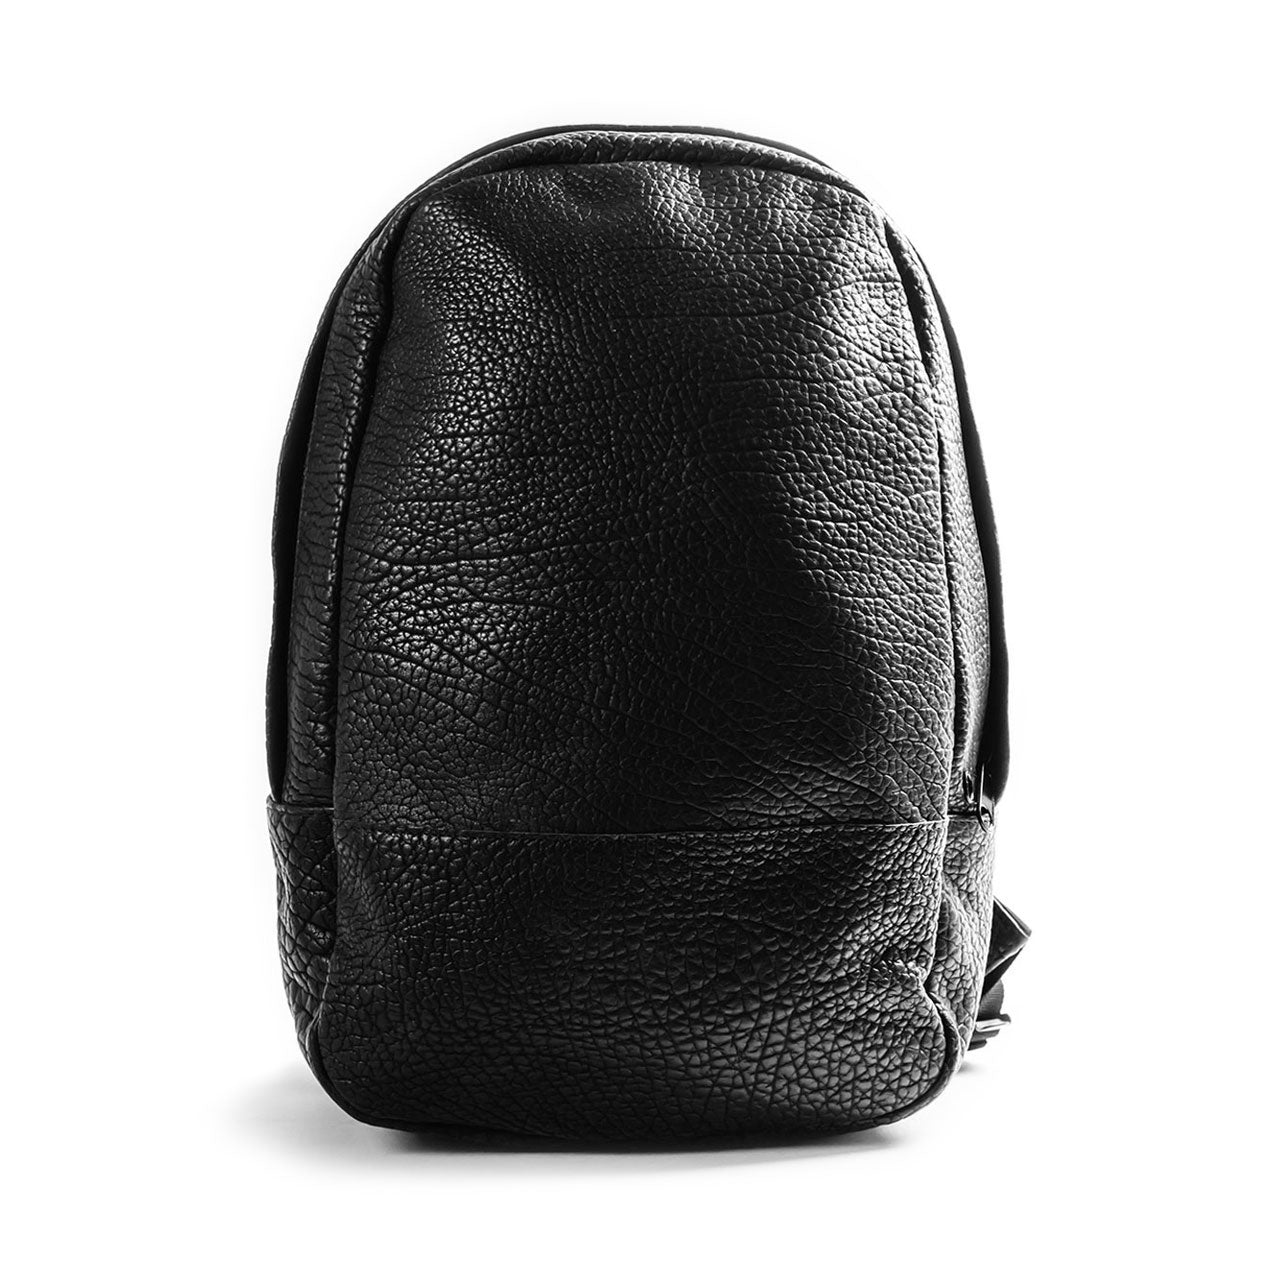 Jack + Mulligan x Uncrate Welles Backpack